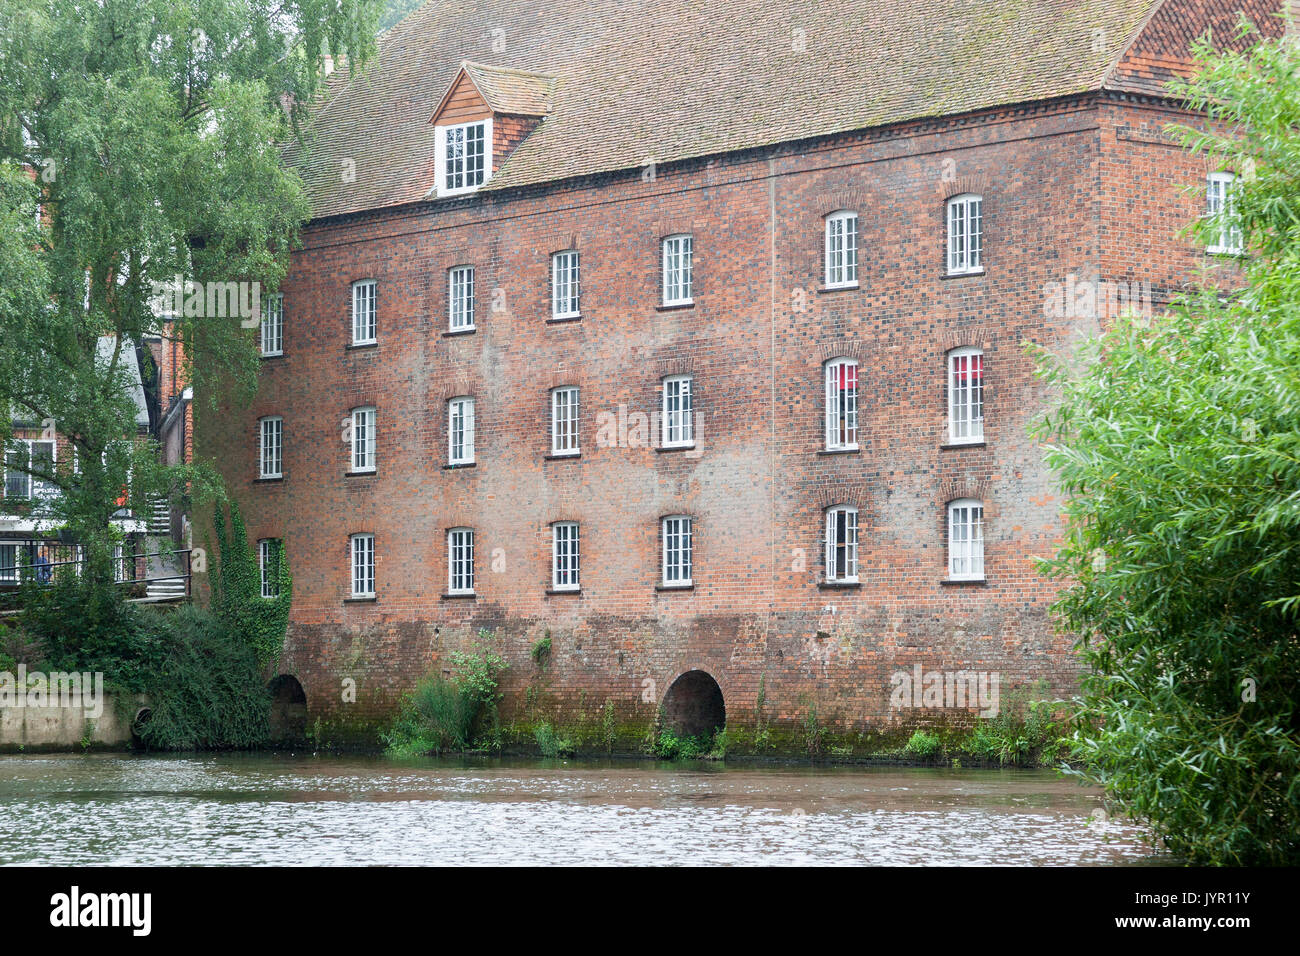 An old Mill House on the River Wey at Guildford, Surrey, England - Stock Image